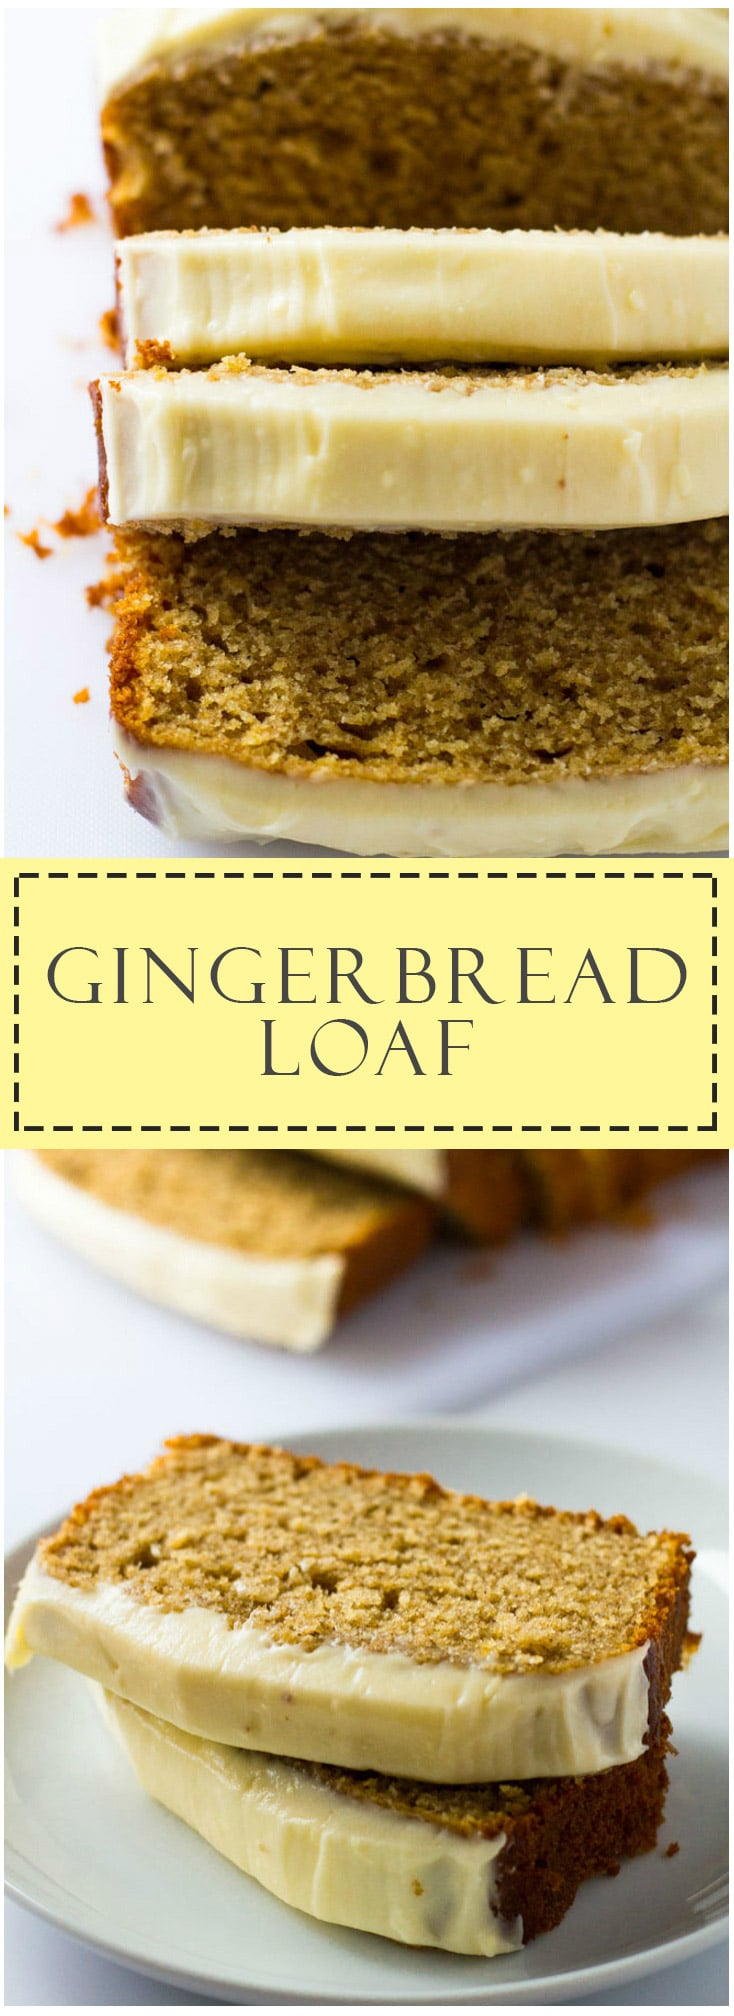 Gingerbread Loaf - Deliciously moist gingerbread spiced loaf cake topped with thick cream cheese frosting!